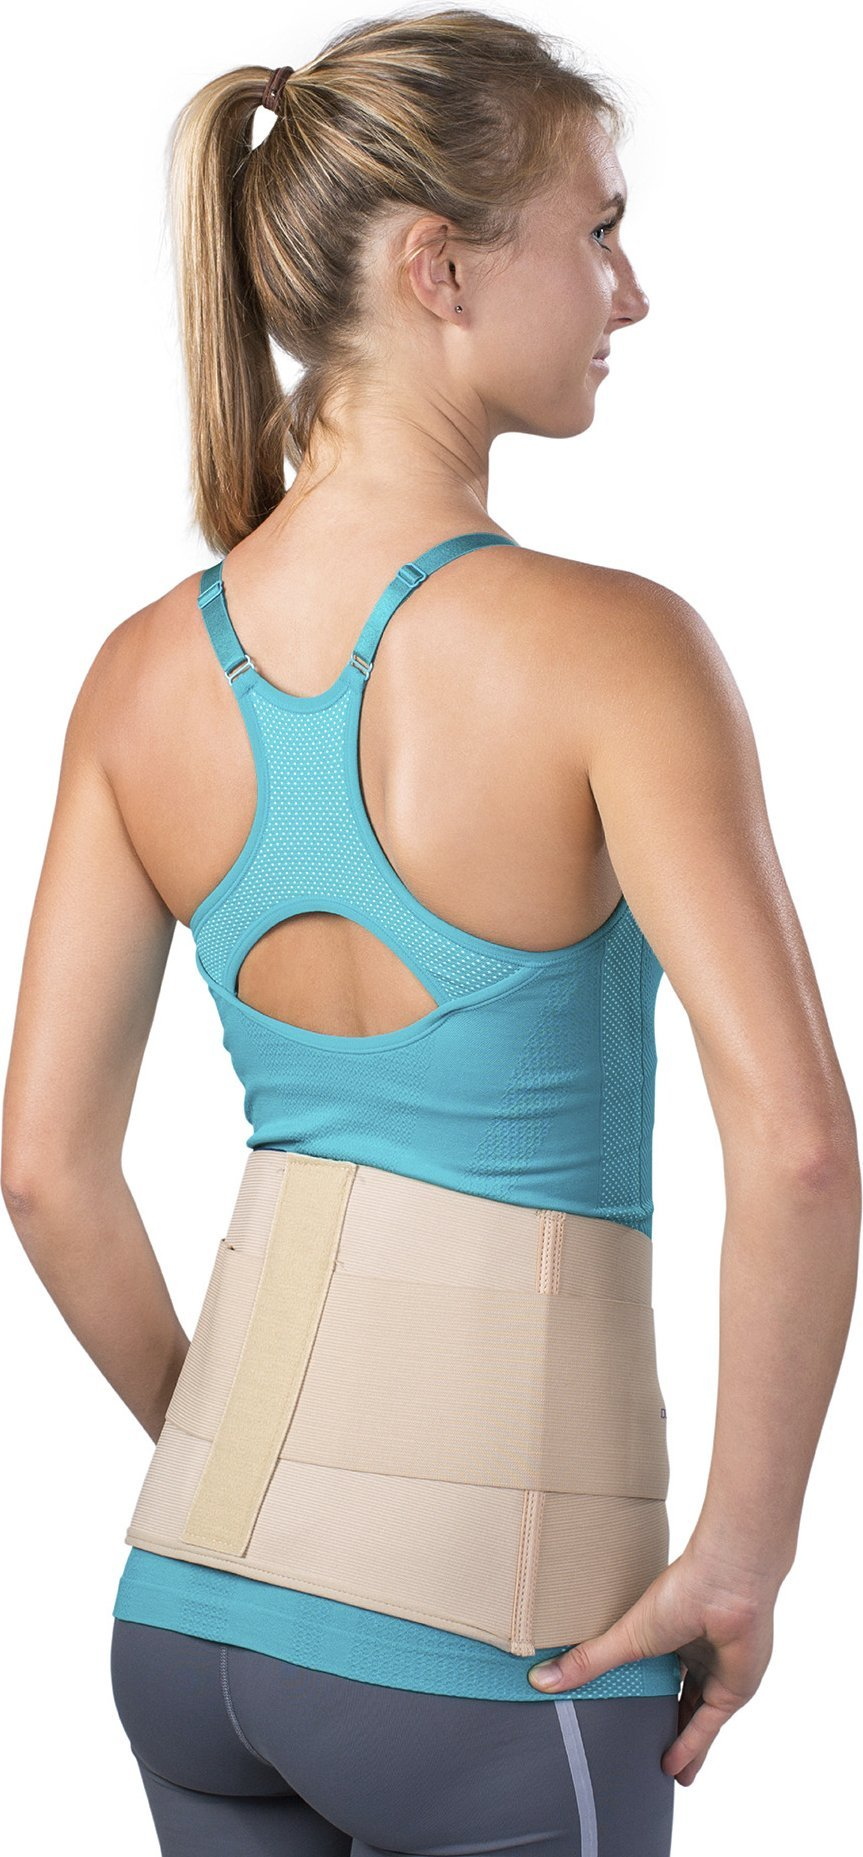 DonJoy Elastic Wrap-Around Lumbar Back Support Brace, Large (Waist: 36'' - 42'') by DonJoy